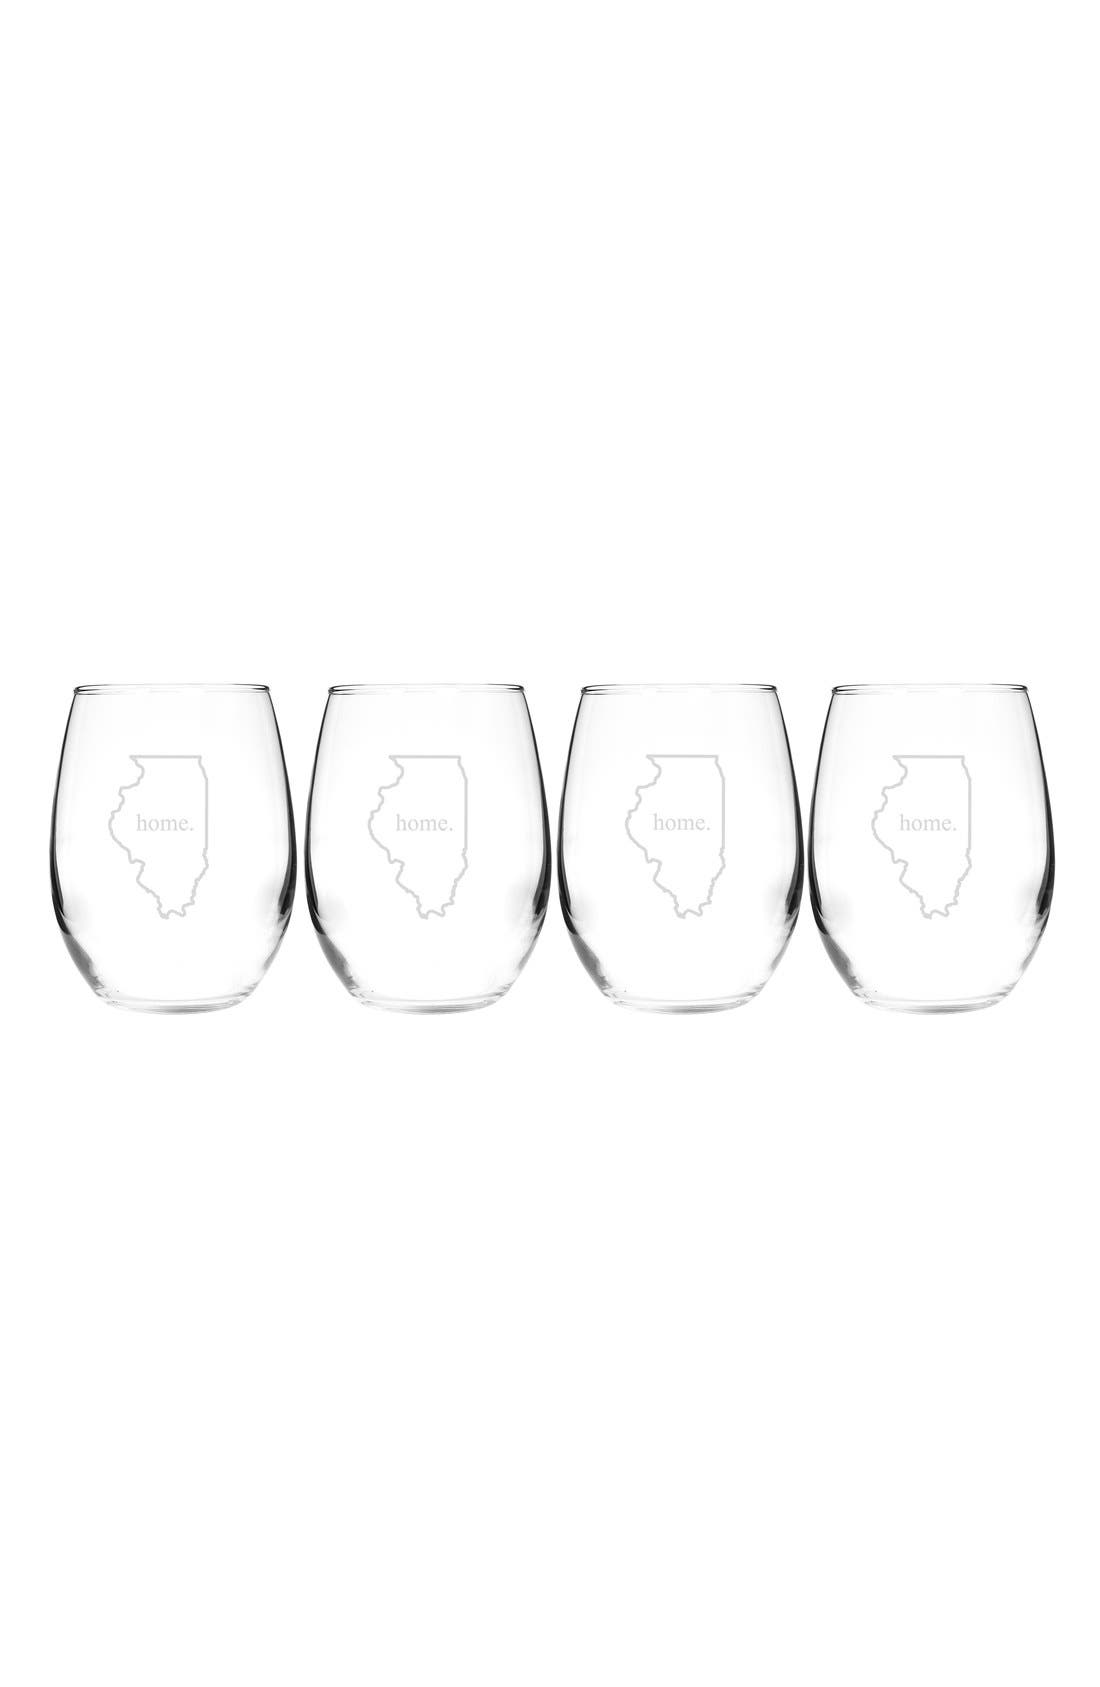 Home State Set of 4 Stemless Wine Glasses,                             Main thumbnail 15, color,